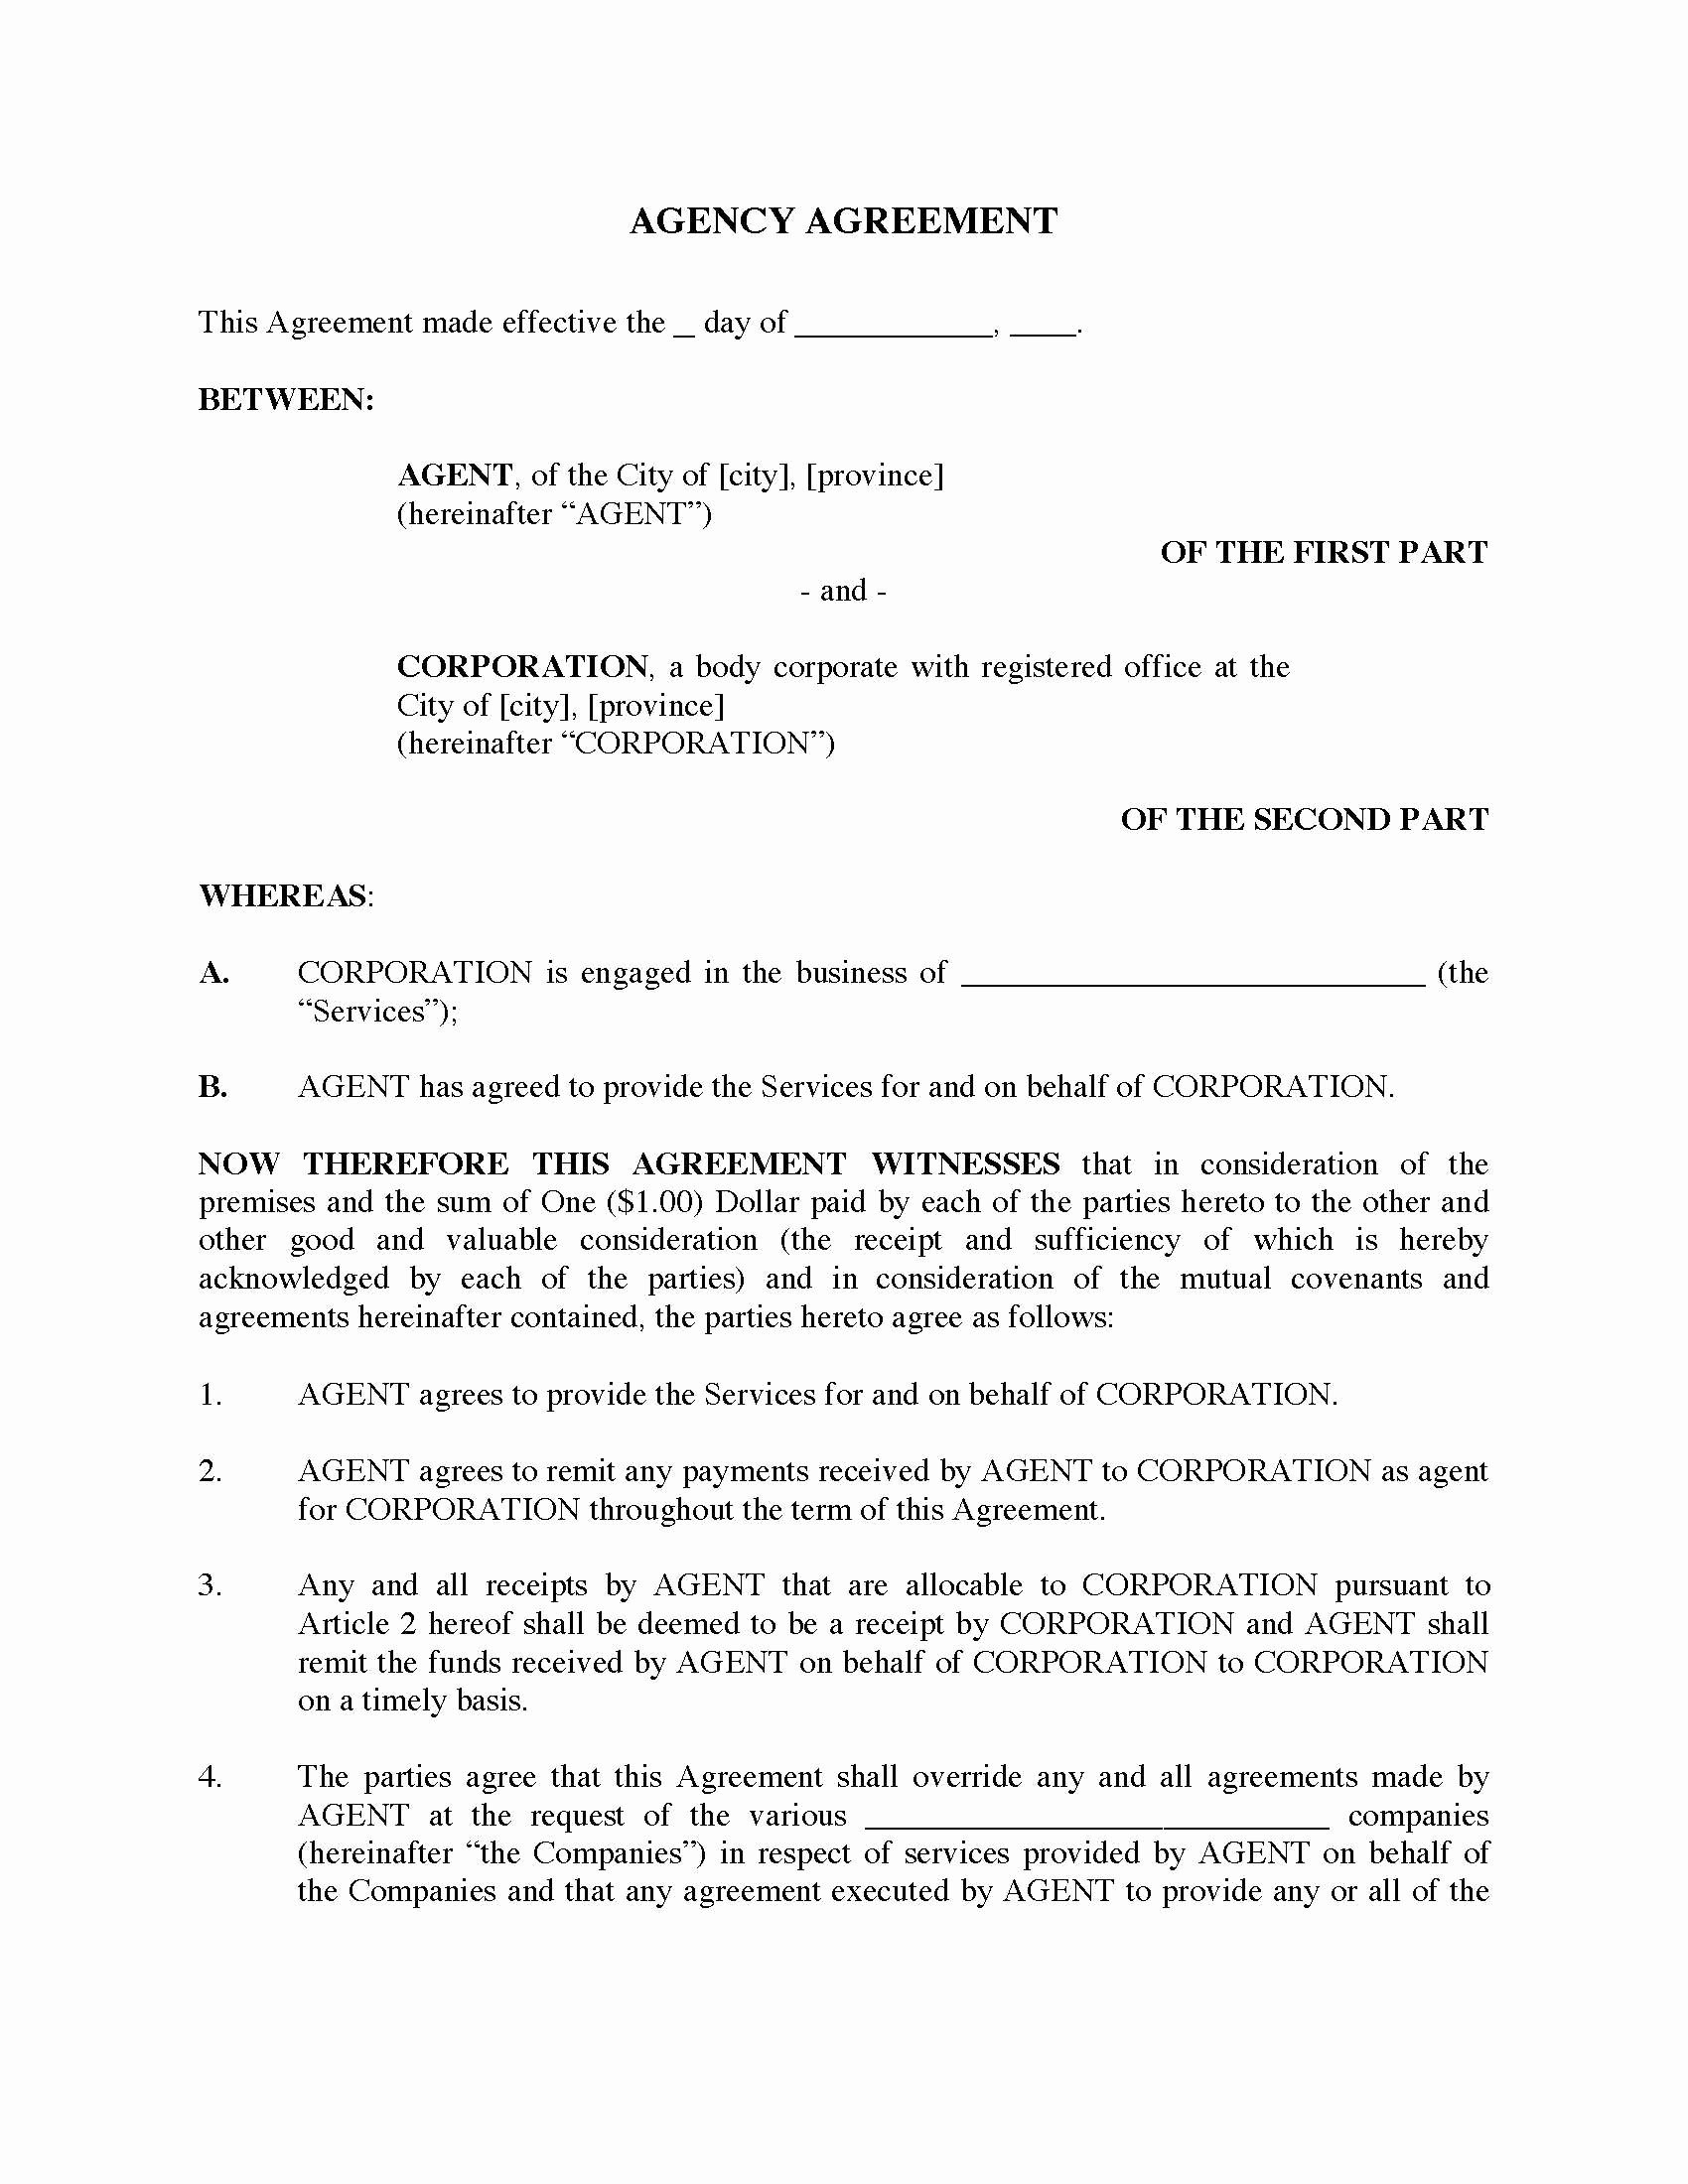 International Distribution Agreement Template Best Of 50 Useful Simple Distribution Agreement Template Se